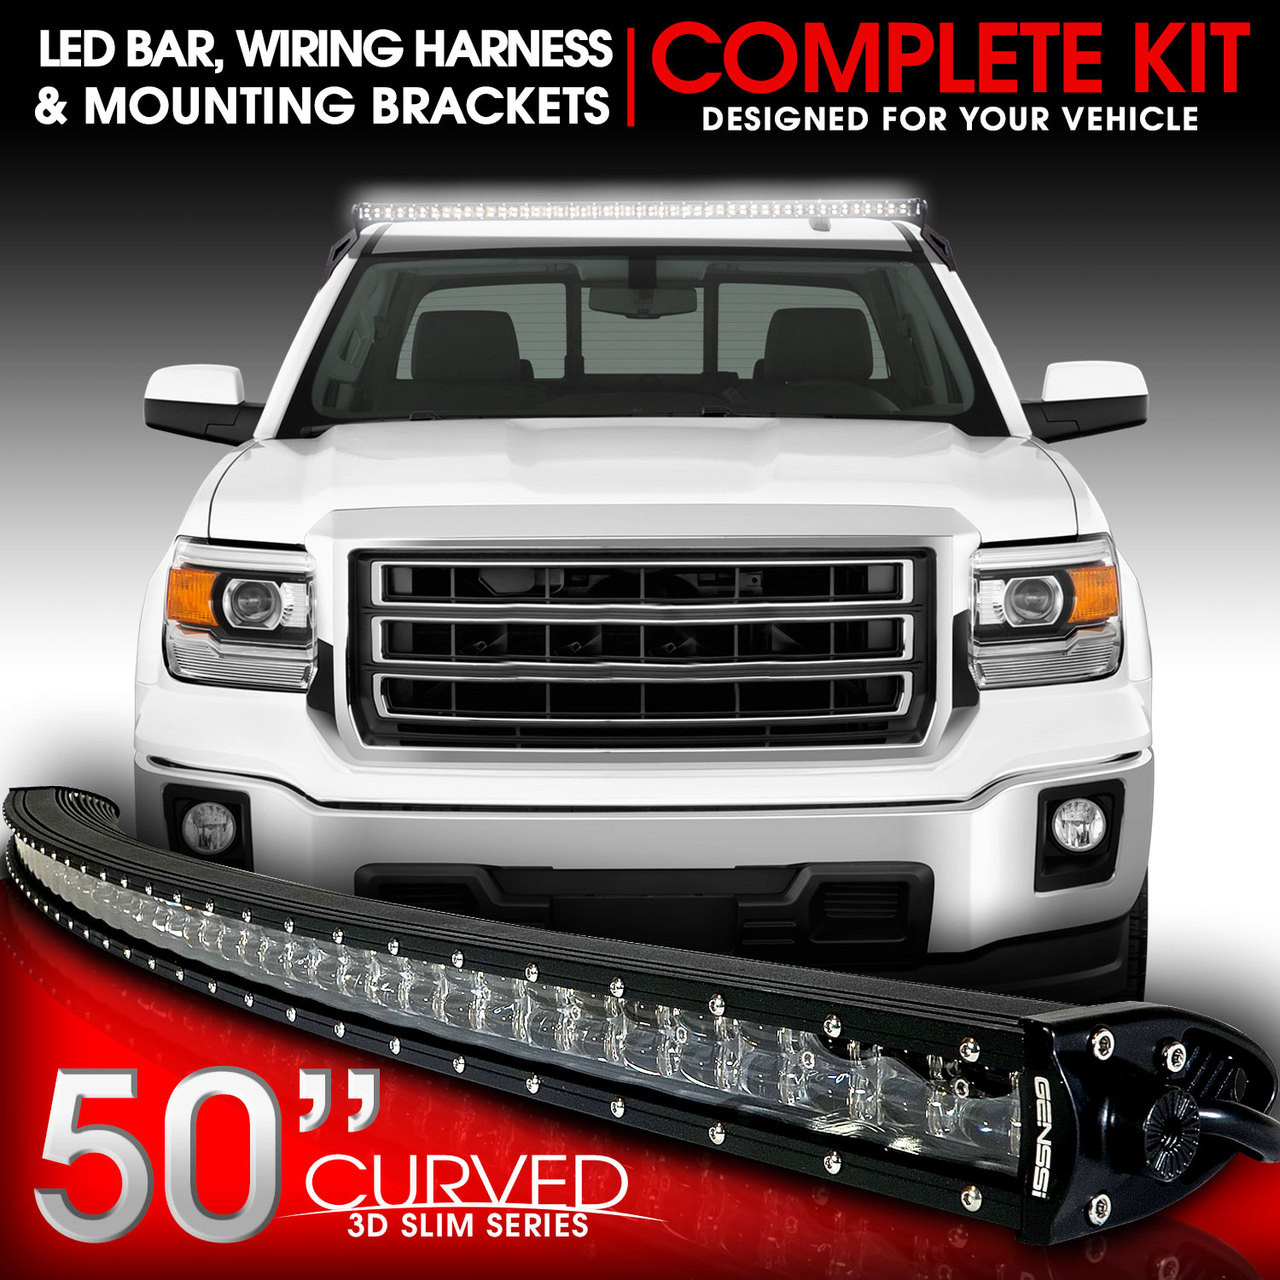 LED Light Bar Curved 288W 50 Inches Bracket Wiring Harness Kit for ...